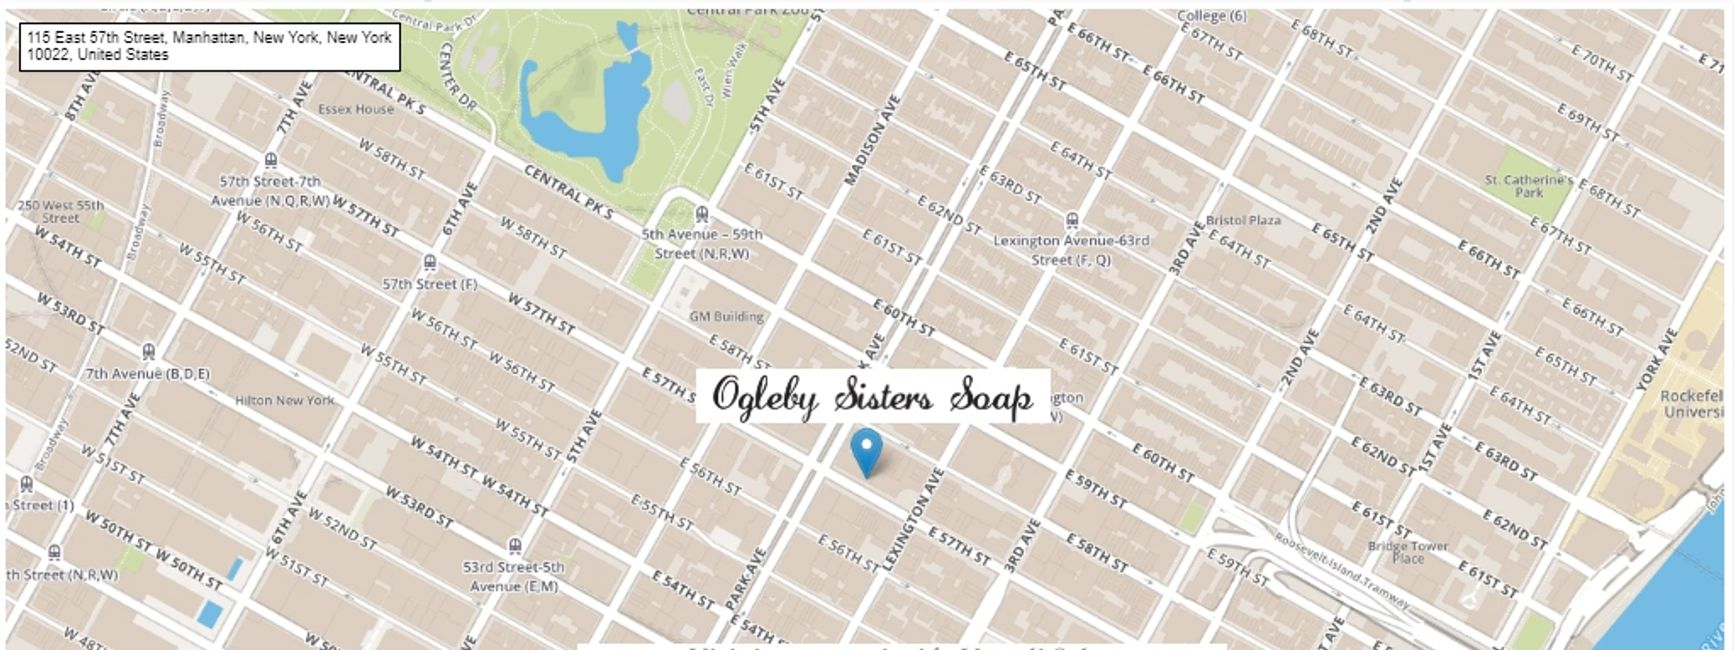 map of upper east side nyc with pinned location of 115 e 57th st. ny ny 10022 vartali salon carries full size bar soap of ogleby sisters soap